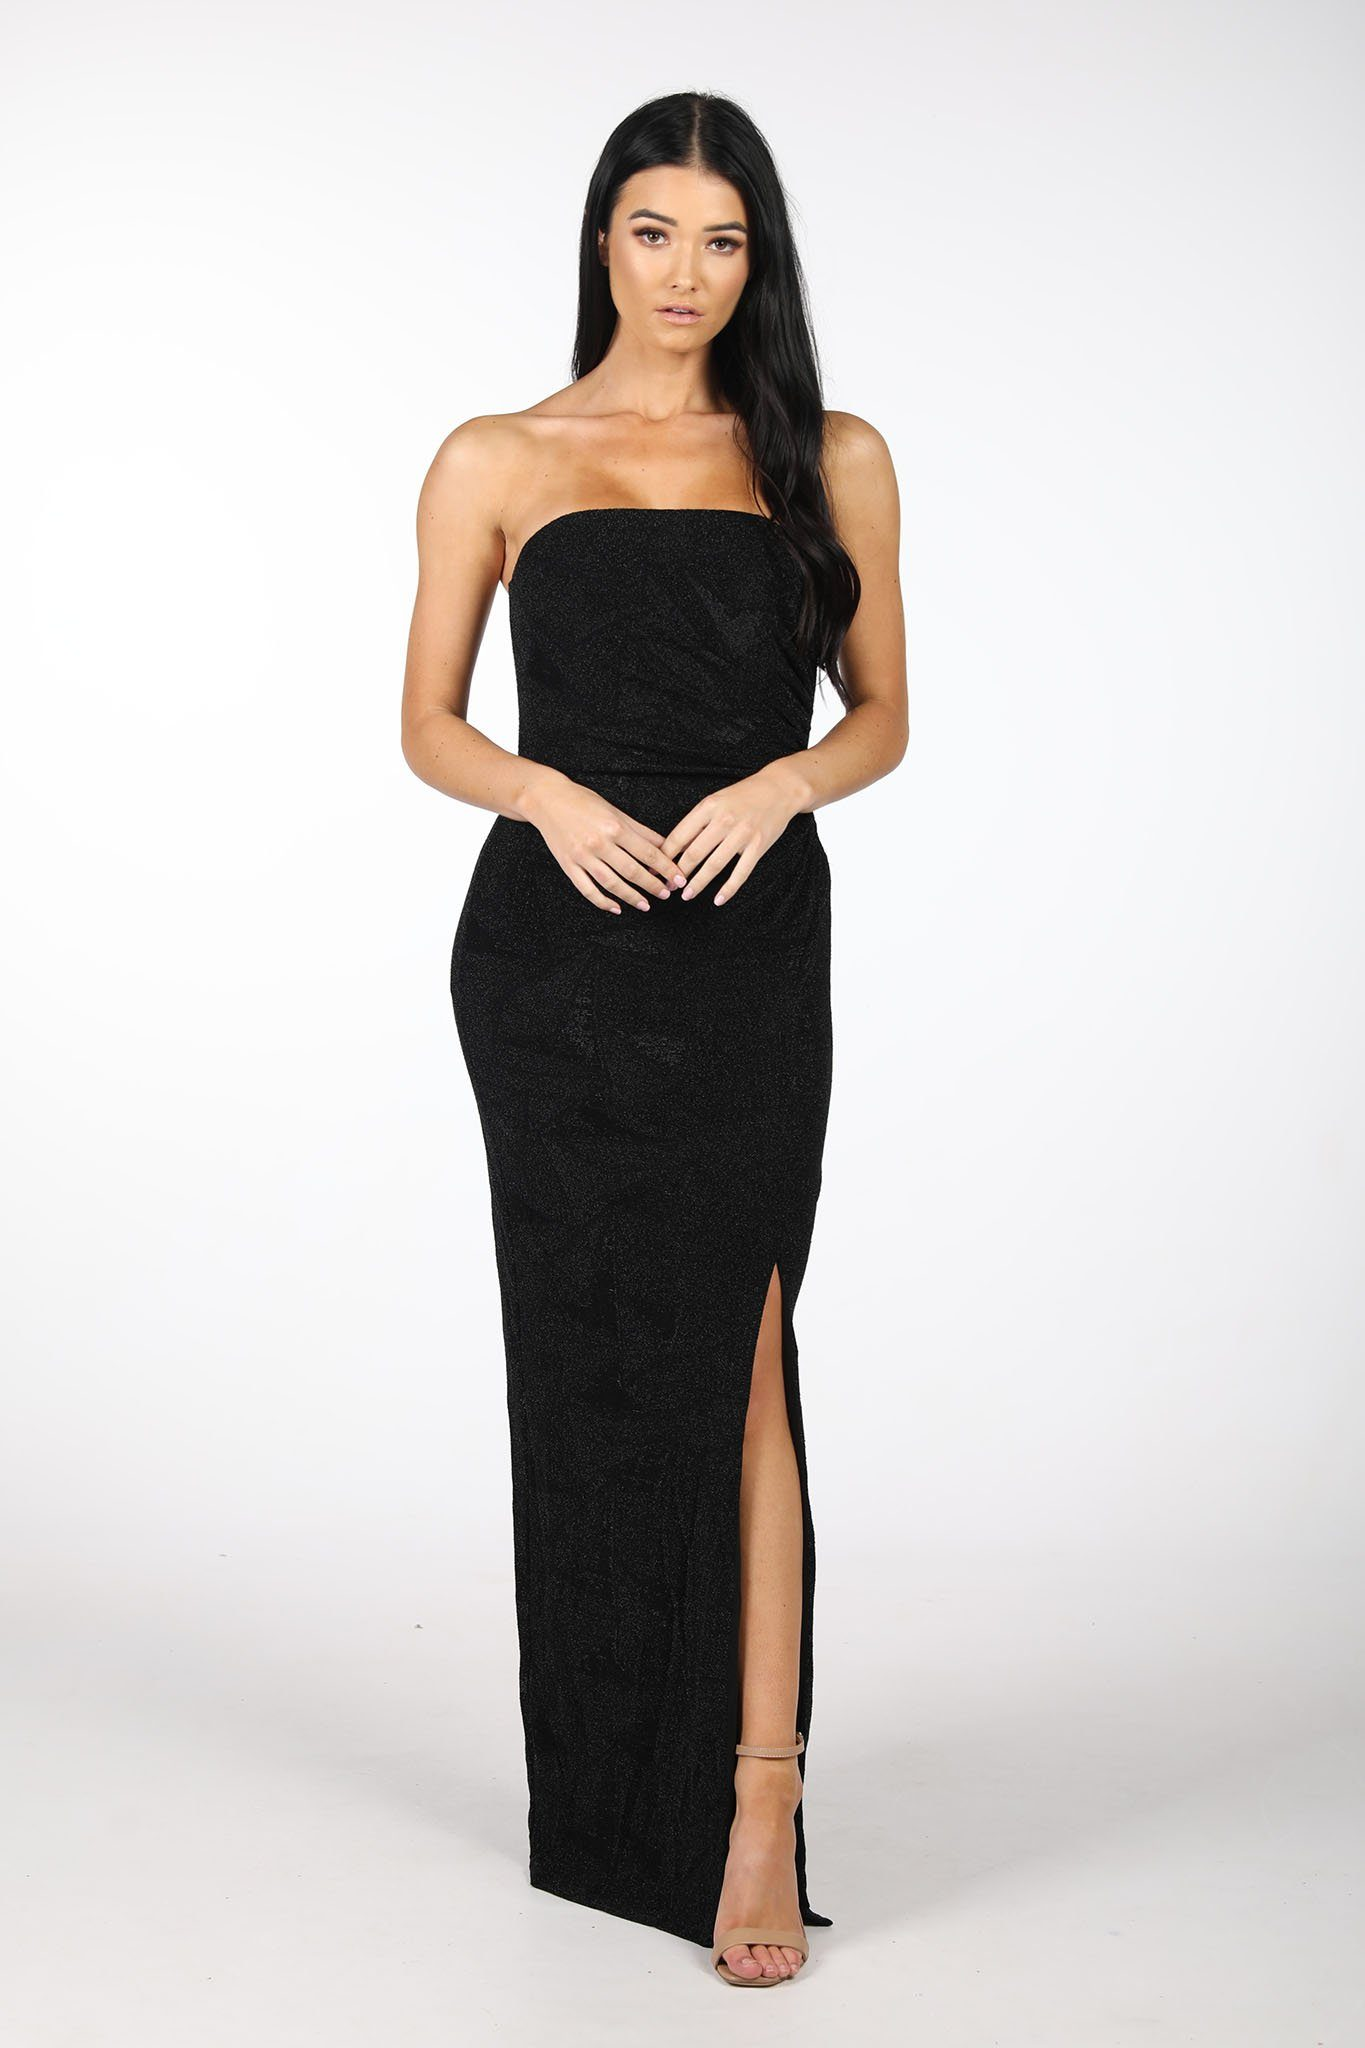 Black Maxi Dress Straight Strapless Neckline, Pleating Details, Column Styled Silhouette with a Side Split. Made with  Black Shimmer Thread Jersey Fabric in Geometric Patterns